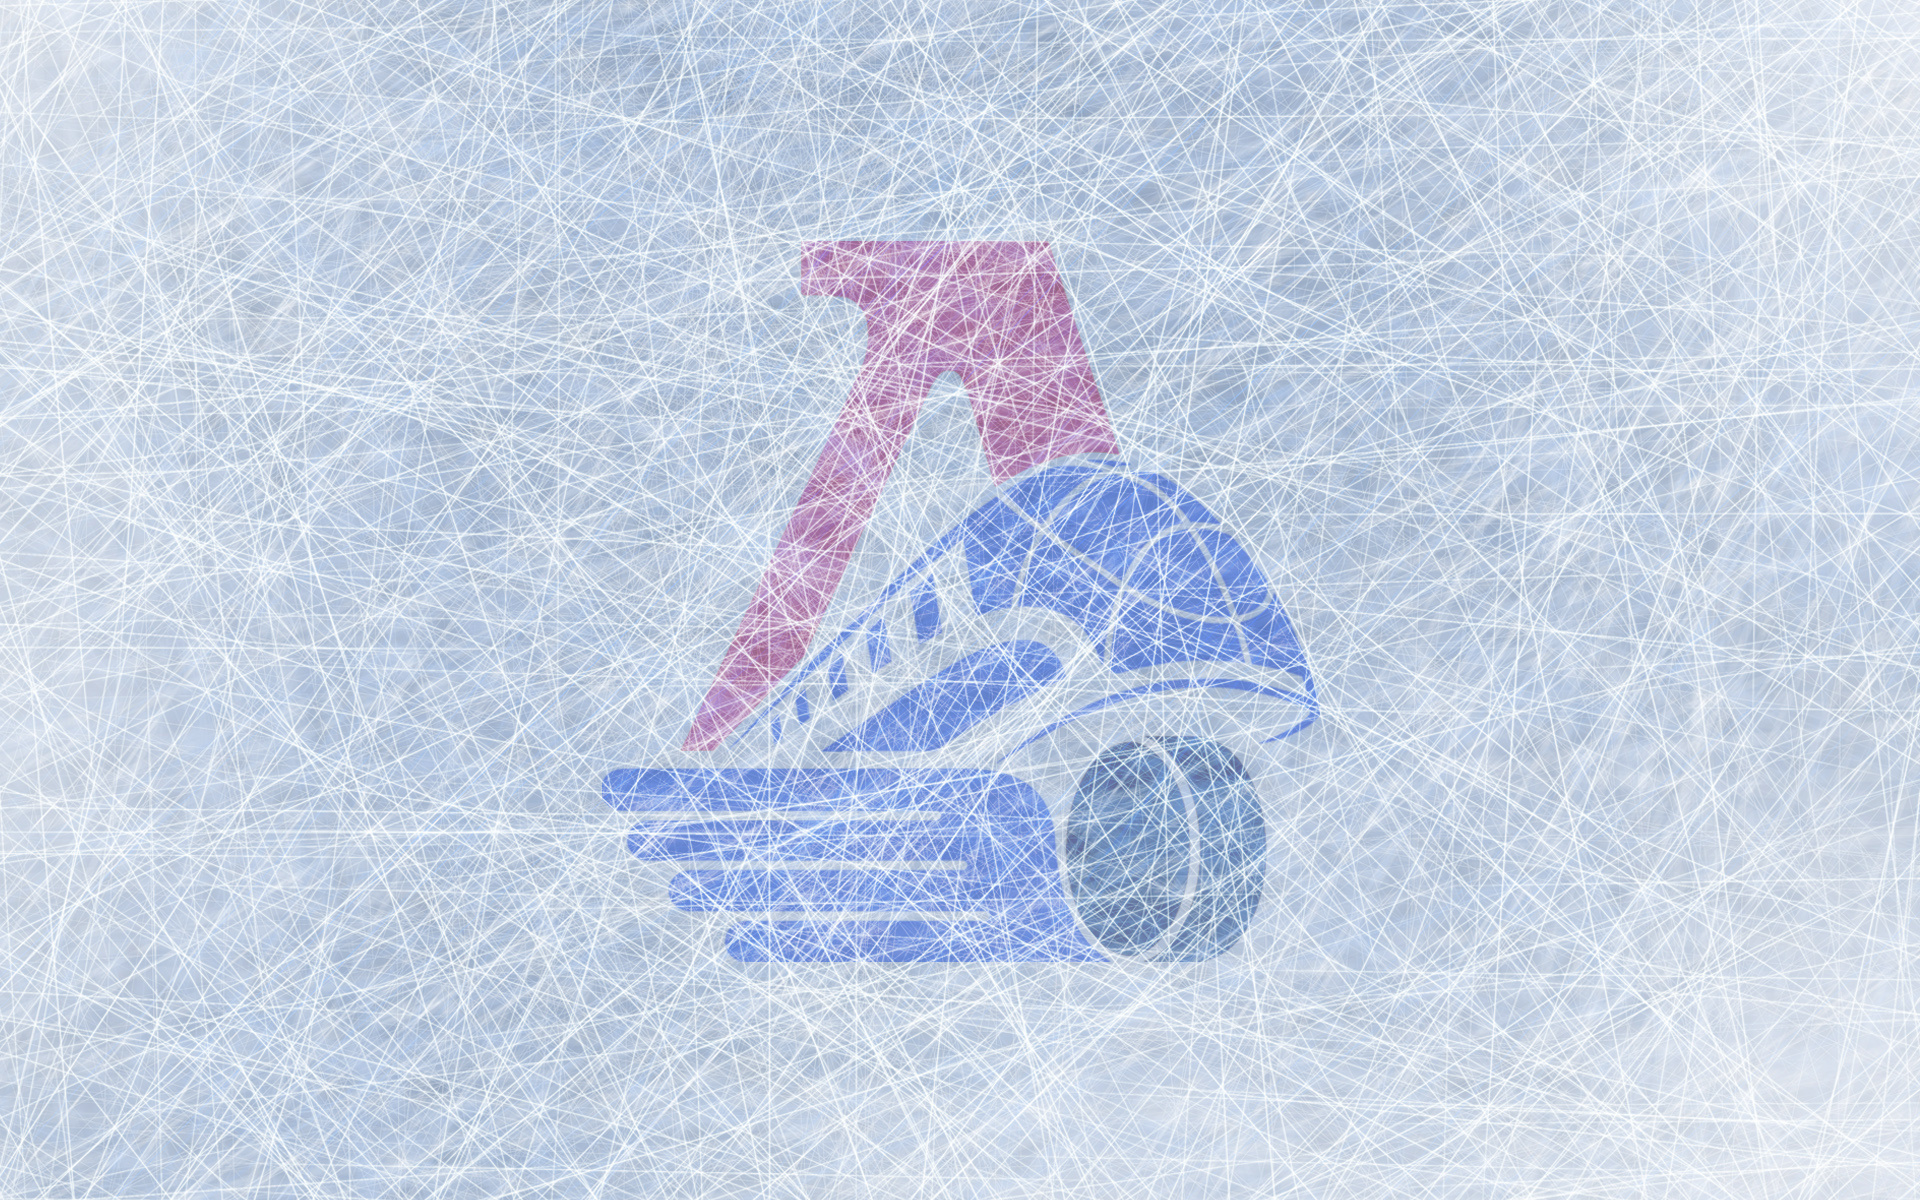 Drawn ice Photo frozen download download ice